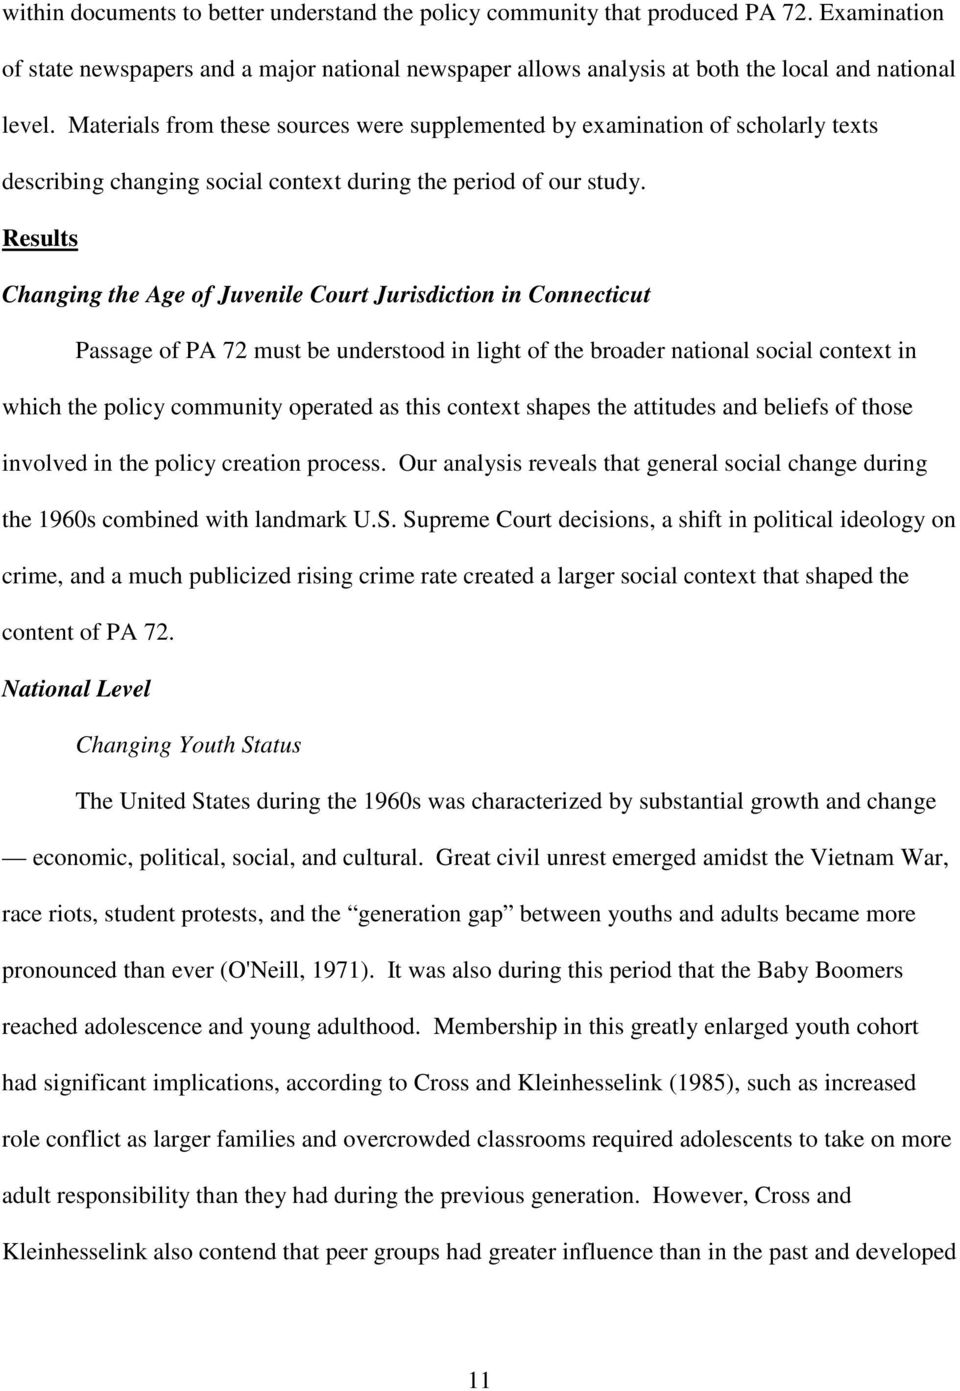 Results Changing the Age of Juvenile Court Jurisdiction in Connecticut Passage of PA 72 must be understood in light of the broader national social context in which the policy community operated as